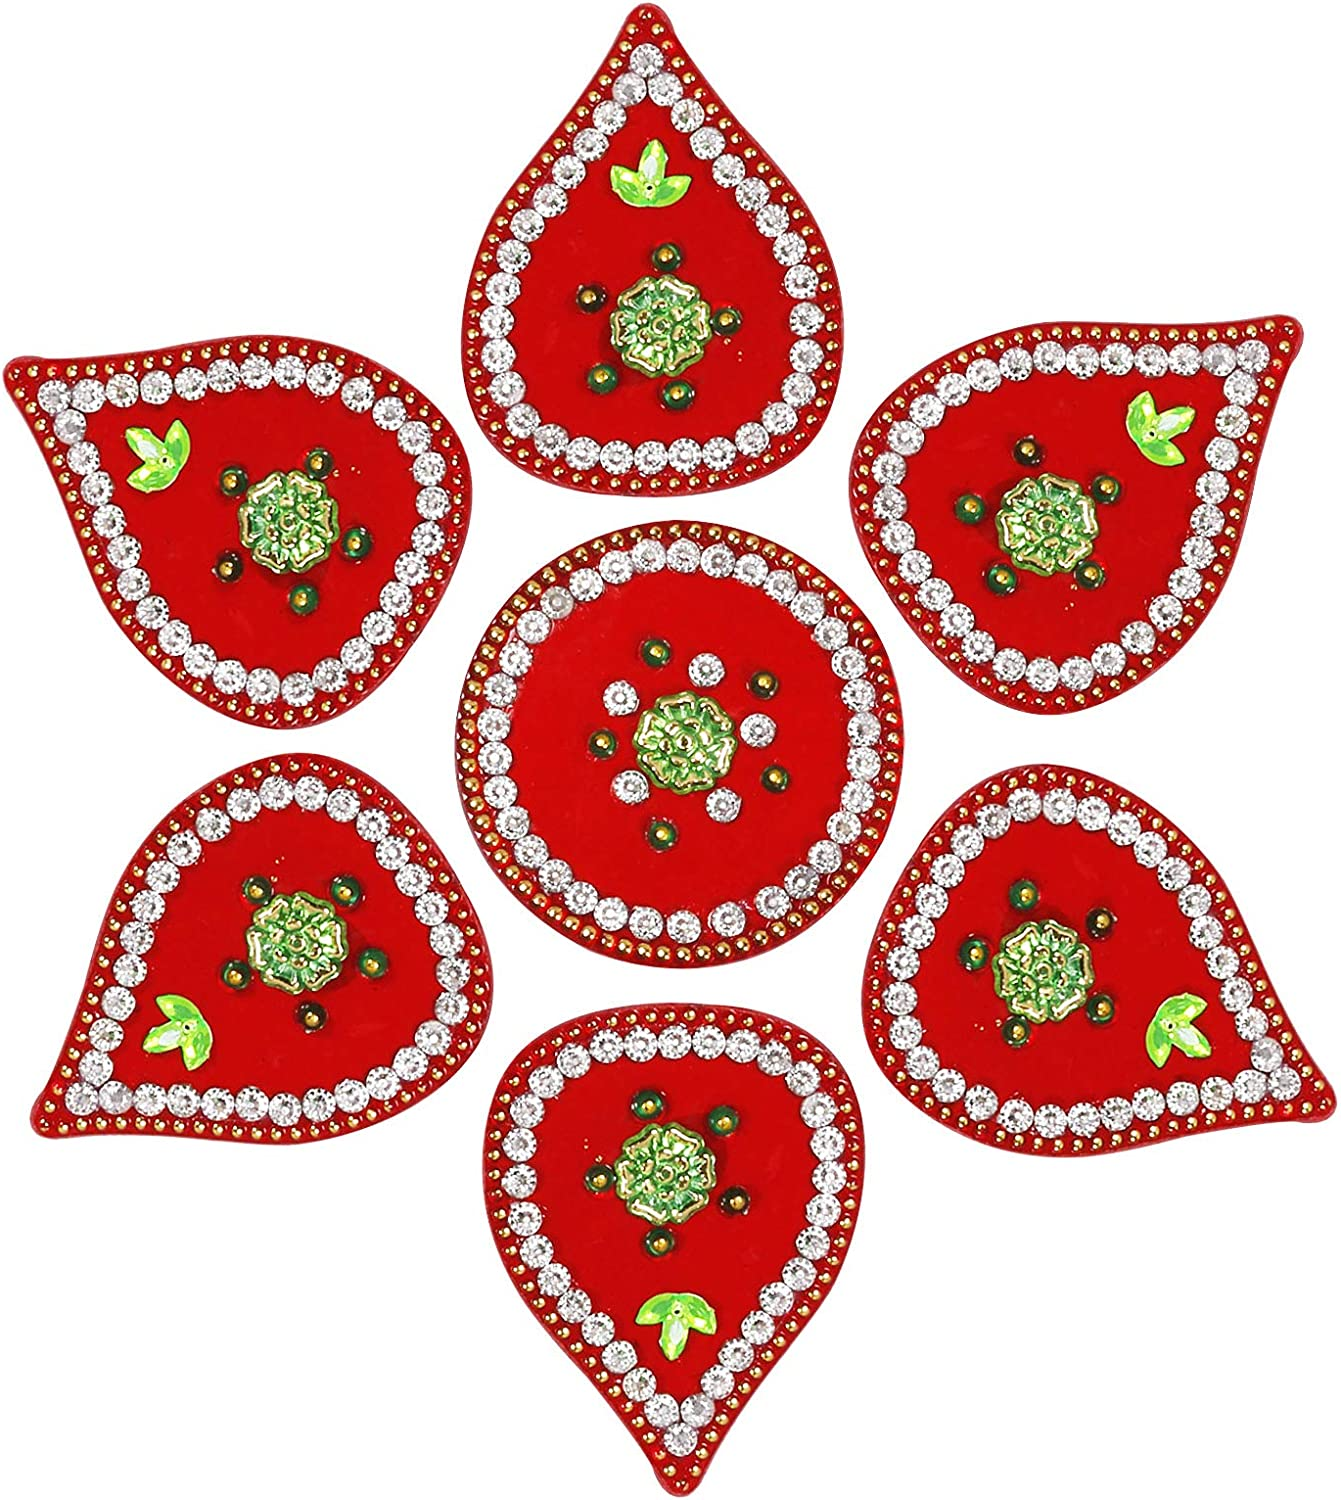 Max 76% OFF ARTISENIA Diwali Rangoli Indian Cheap mail order specialty store Modak 7 Shape Red Pieces